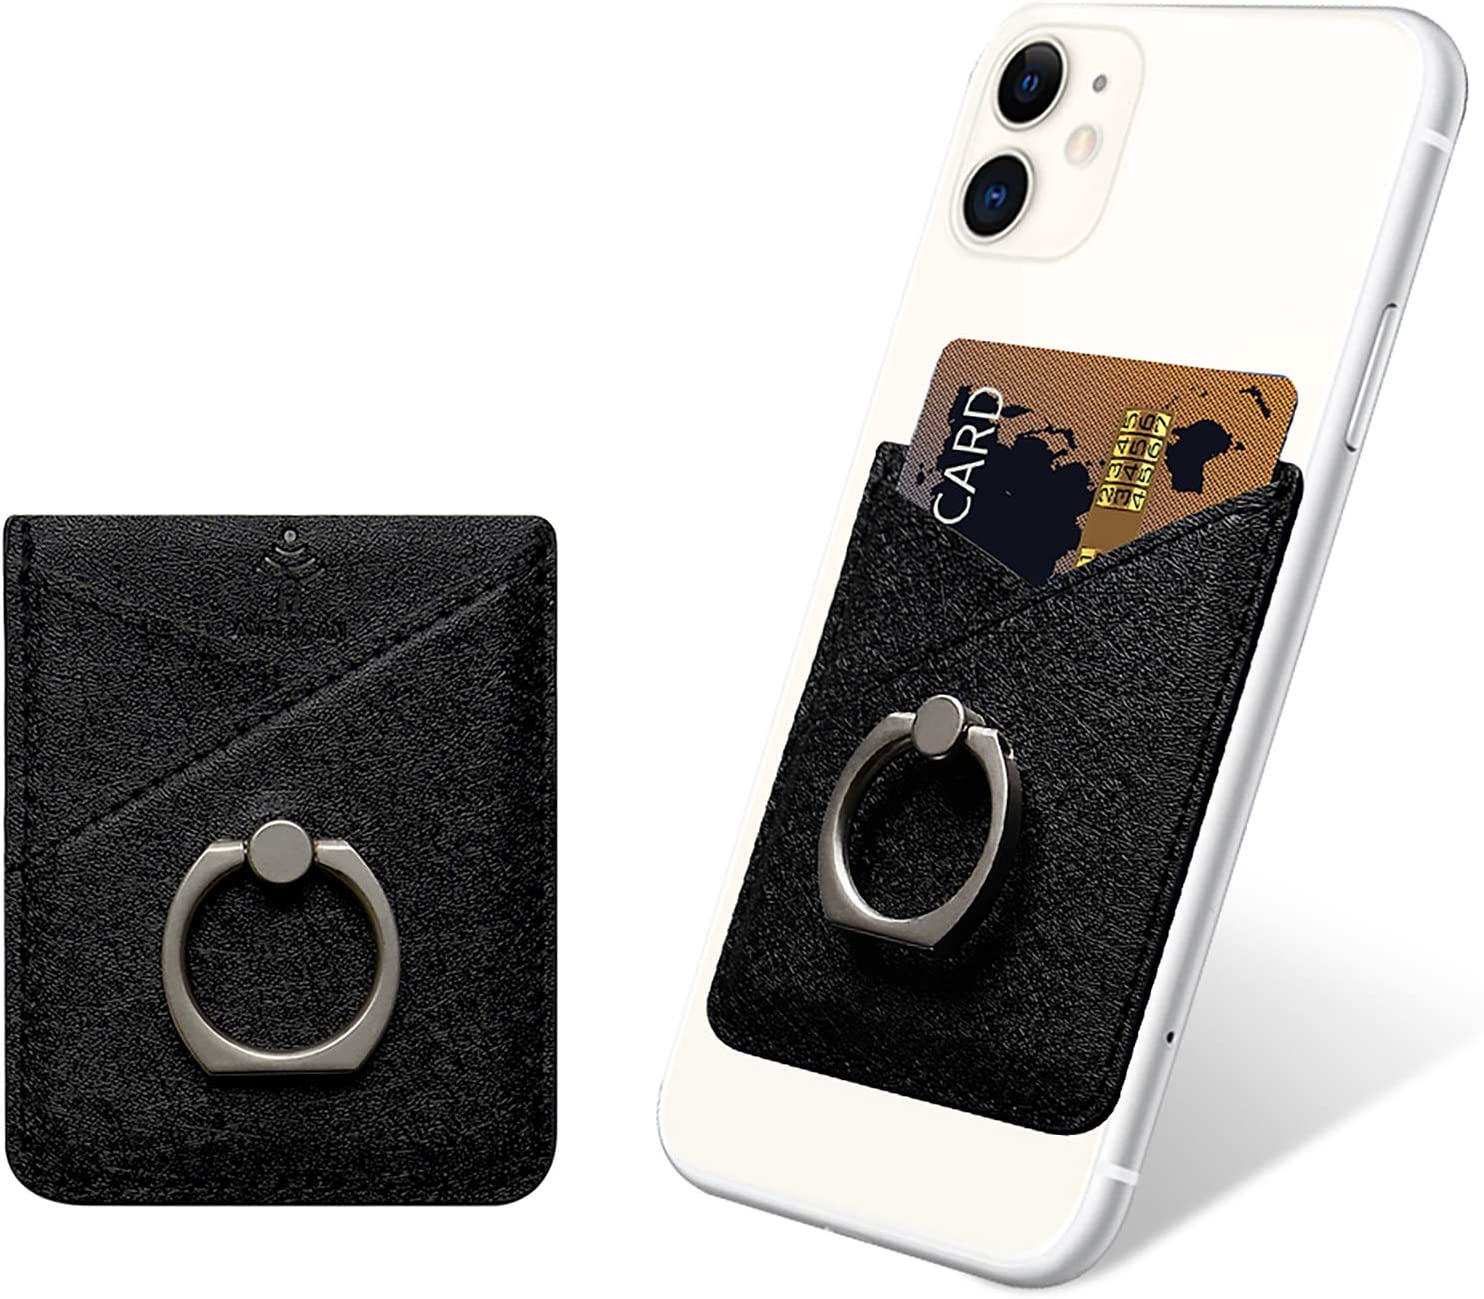 takyu Card Holder for Back of Phone, Cell Phone Card Holder with Ring Grip Phone Wallet Stick on Phone or Case, RFID Blocking Credit Card Holder Card Pocket Compatible with Most Smartphones (Black)